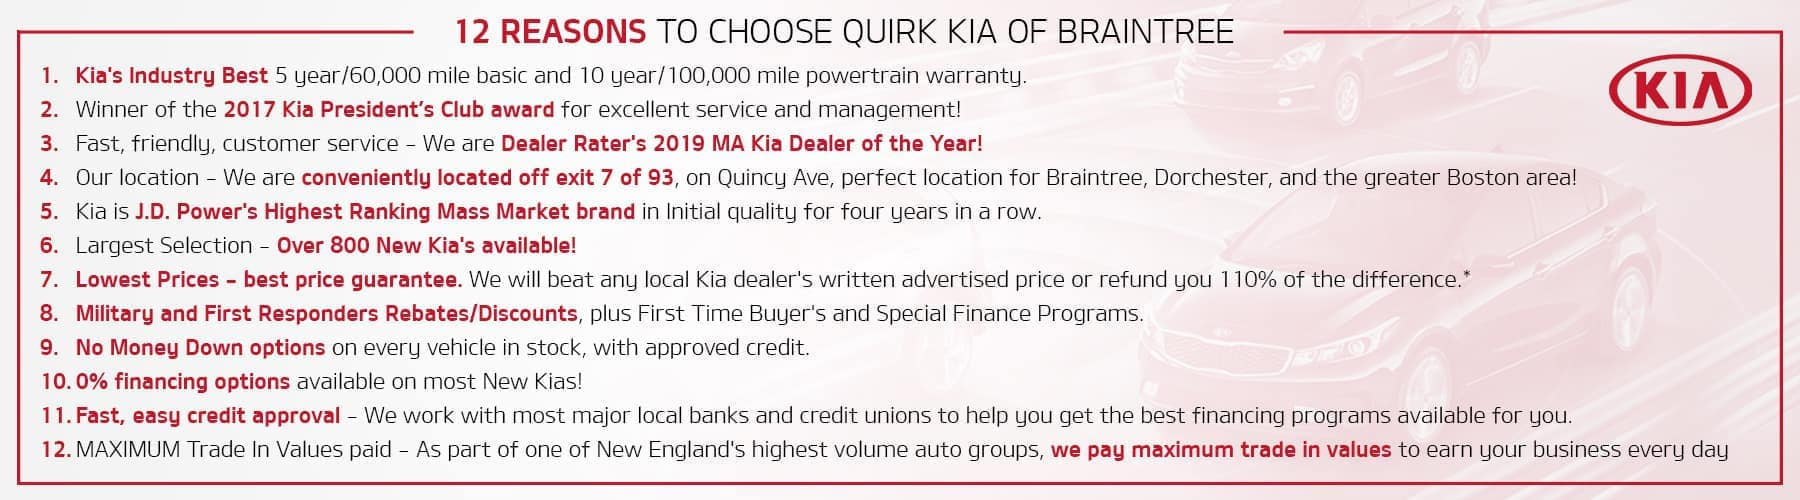 12 Reasons to Choose Quirk Kia!